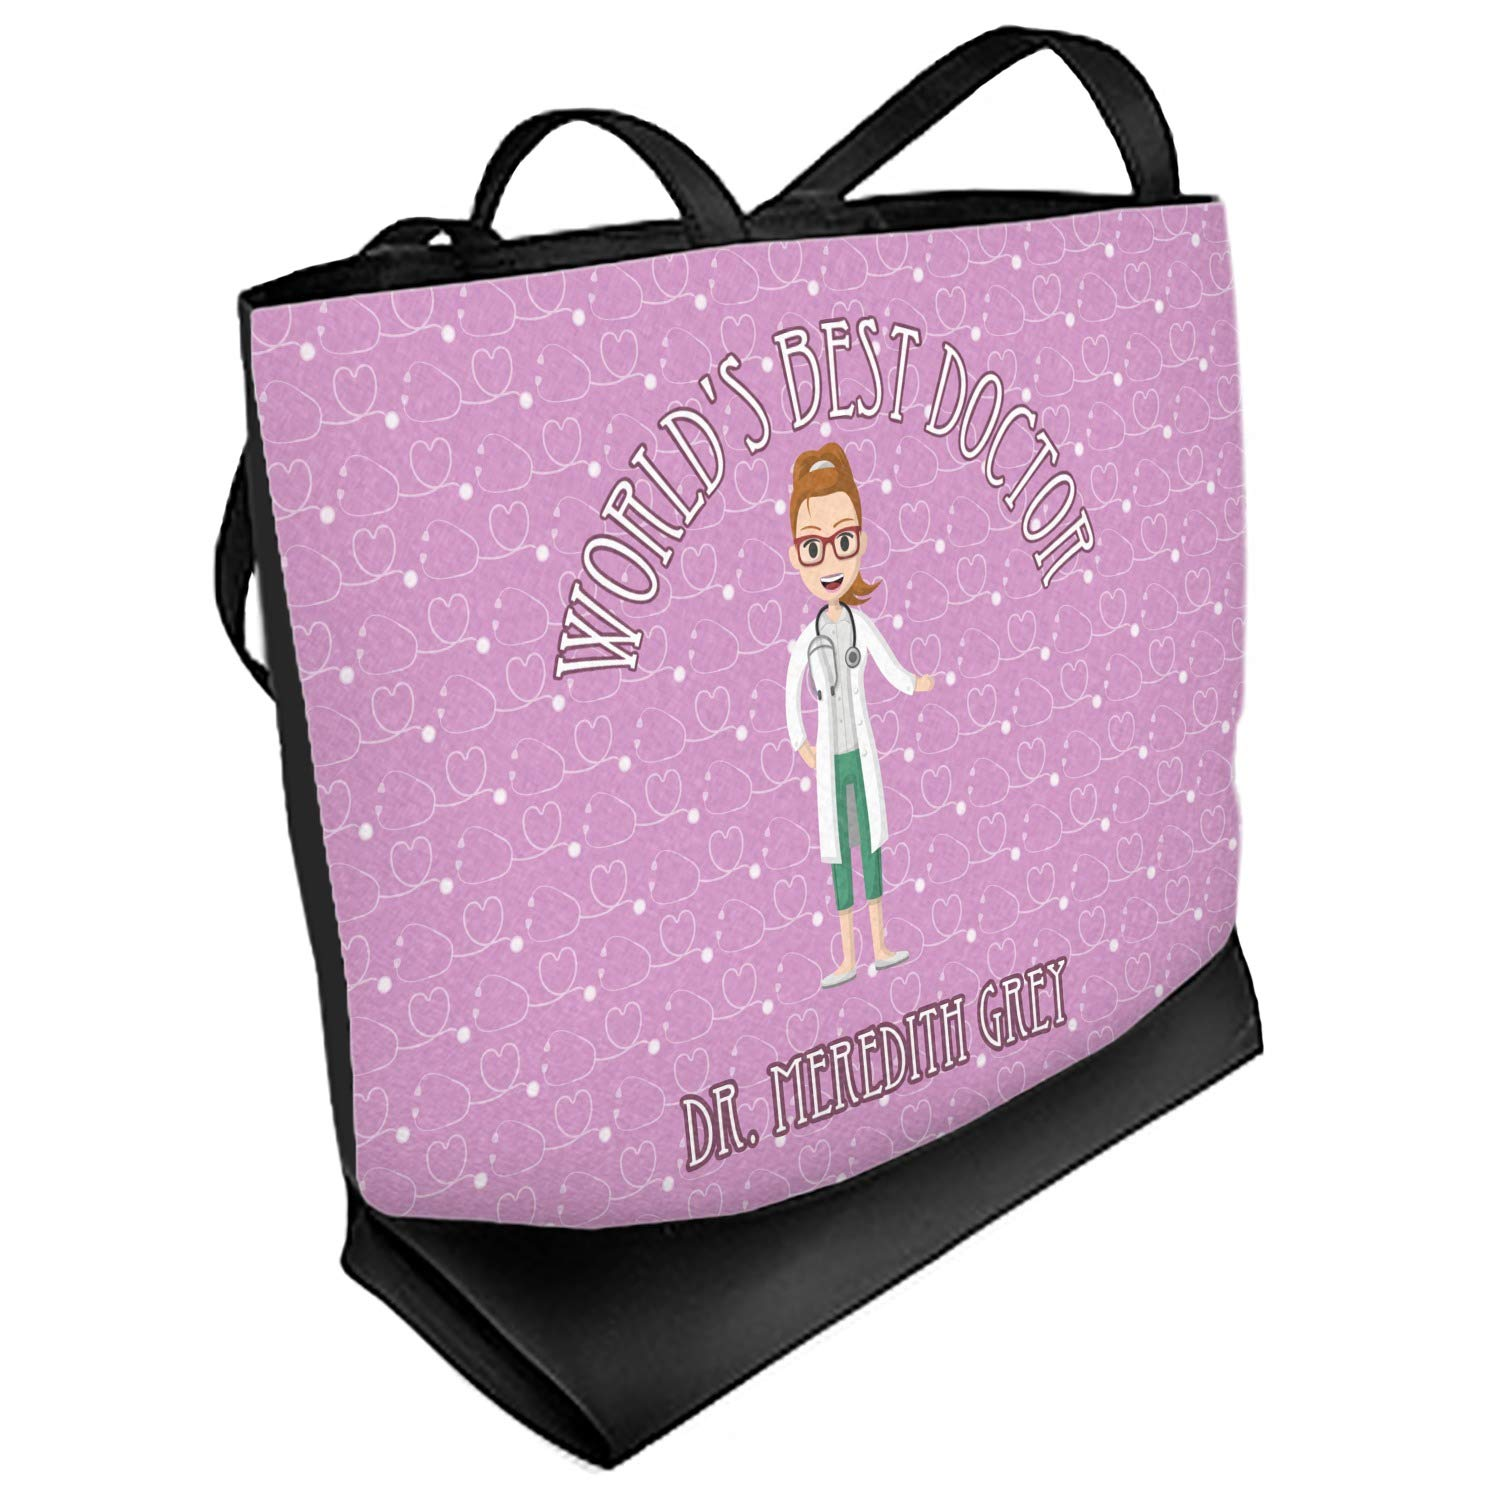 Front Regular Personalized Doctor Avatar Beach Tote Bag